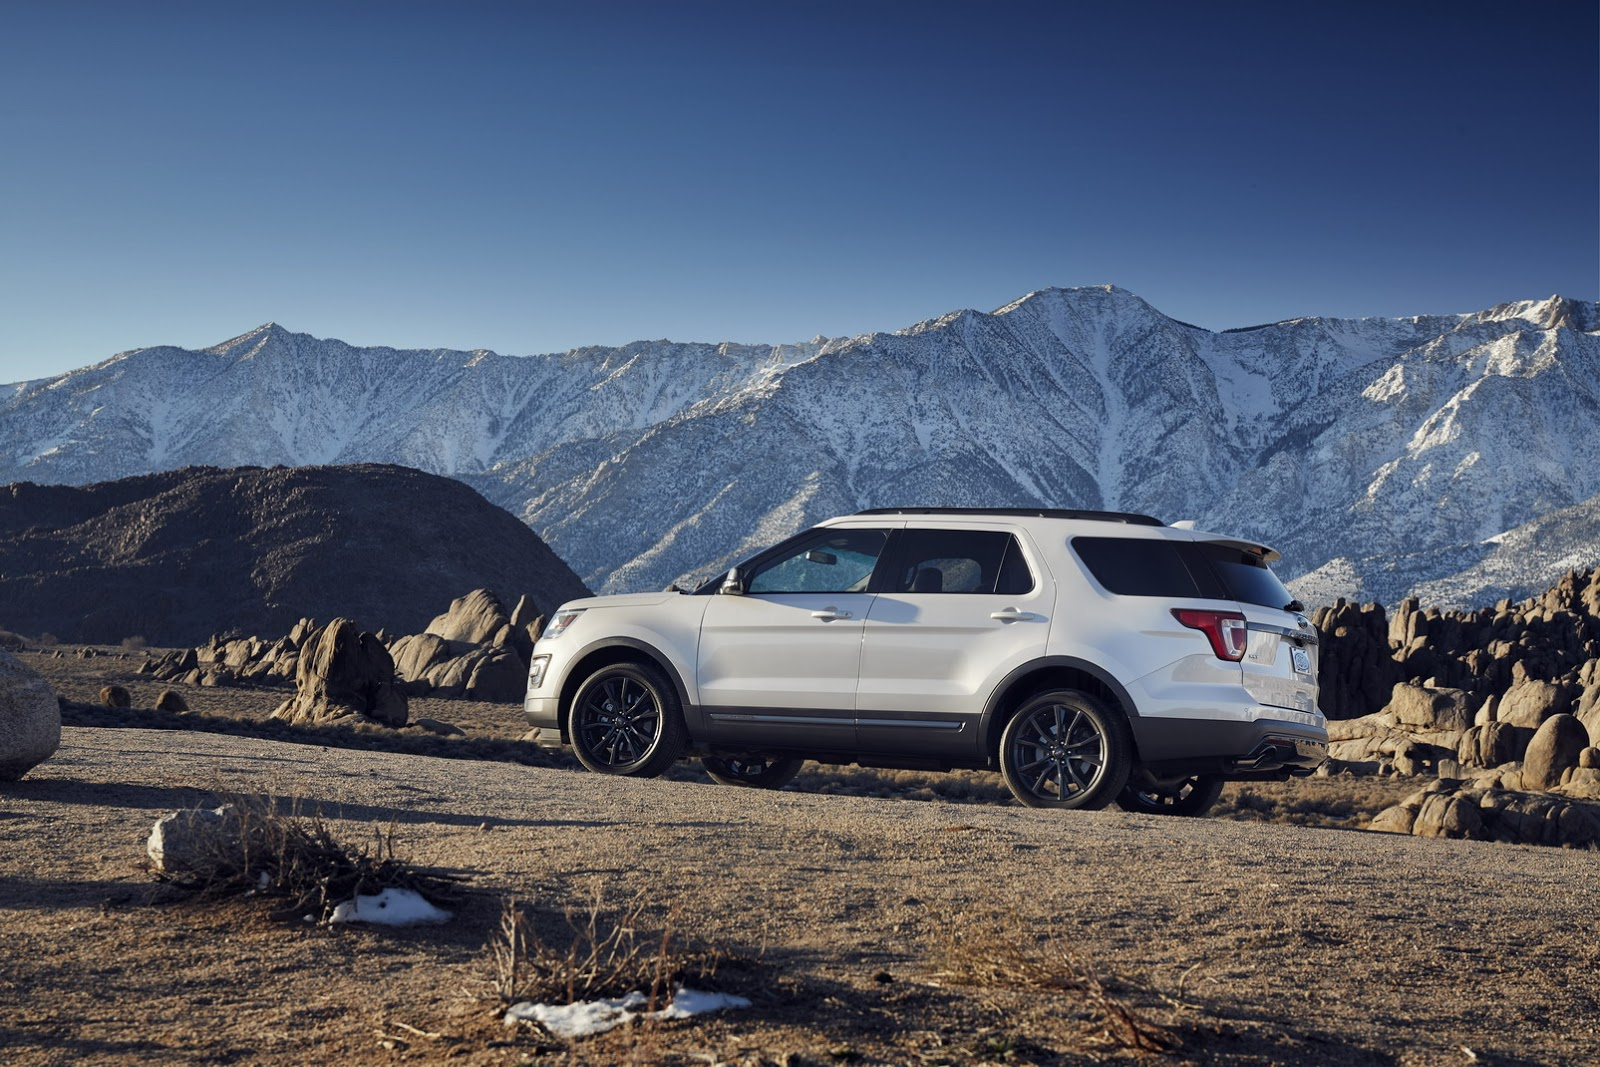 2017 ford explorer xlt sport appearance package revealed ahead of chicago debut_3 2016 explorer fuse box 2003 explorer fuse box \u2022 wiring diagrams  at gsmx.co